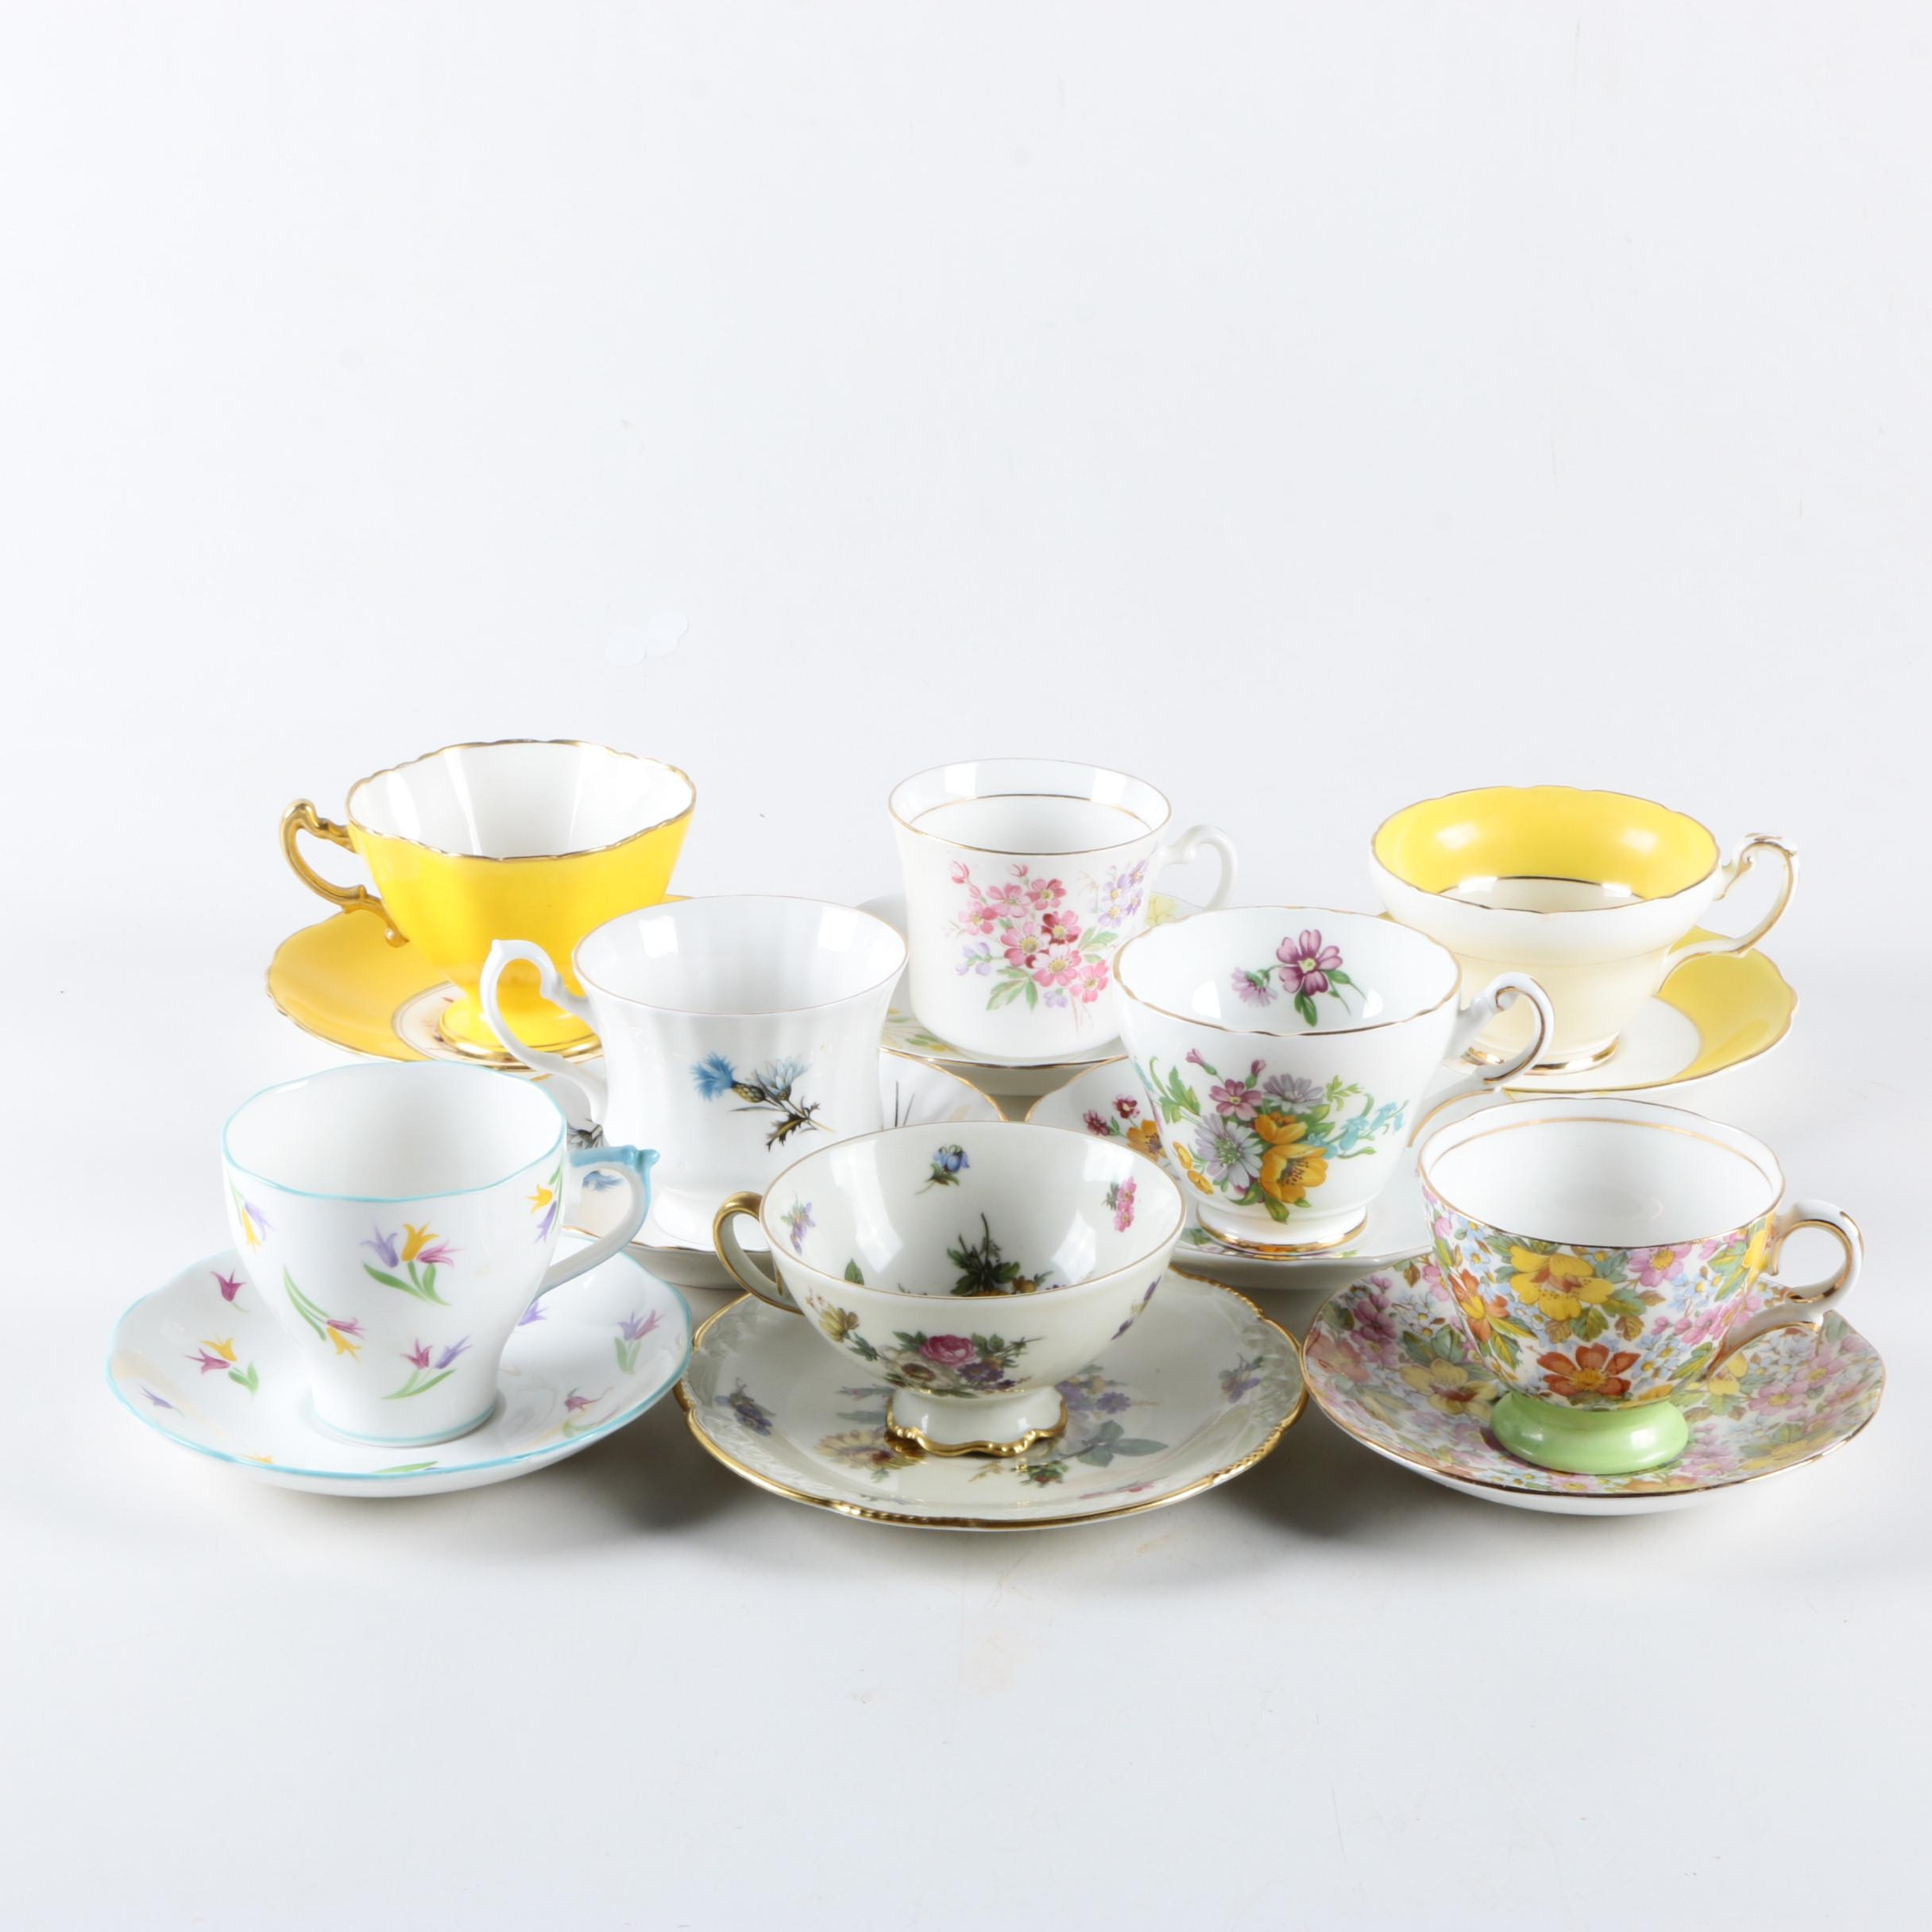 Vintage Bone China and Porcelain Teacups and Saucers Including Foley China